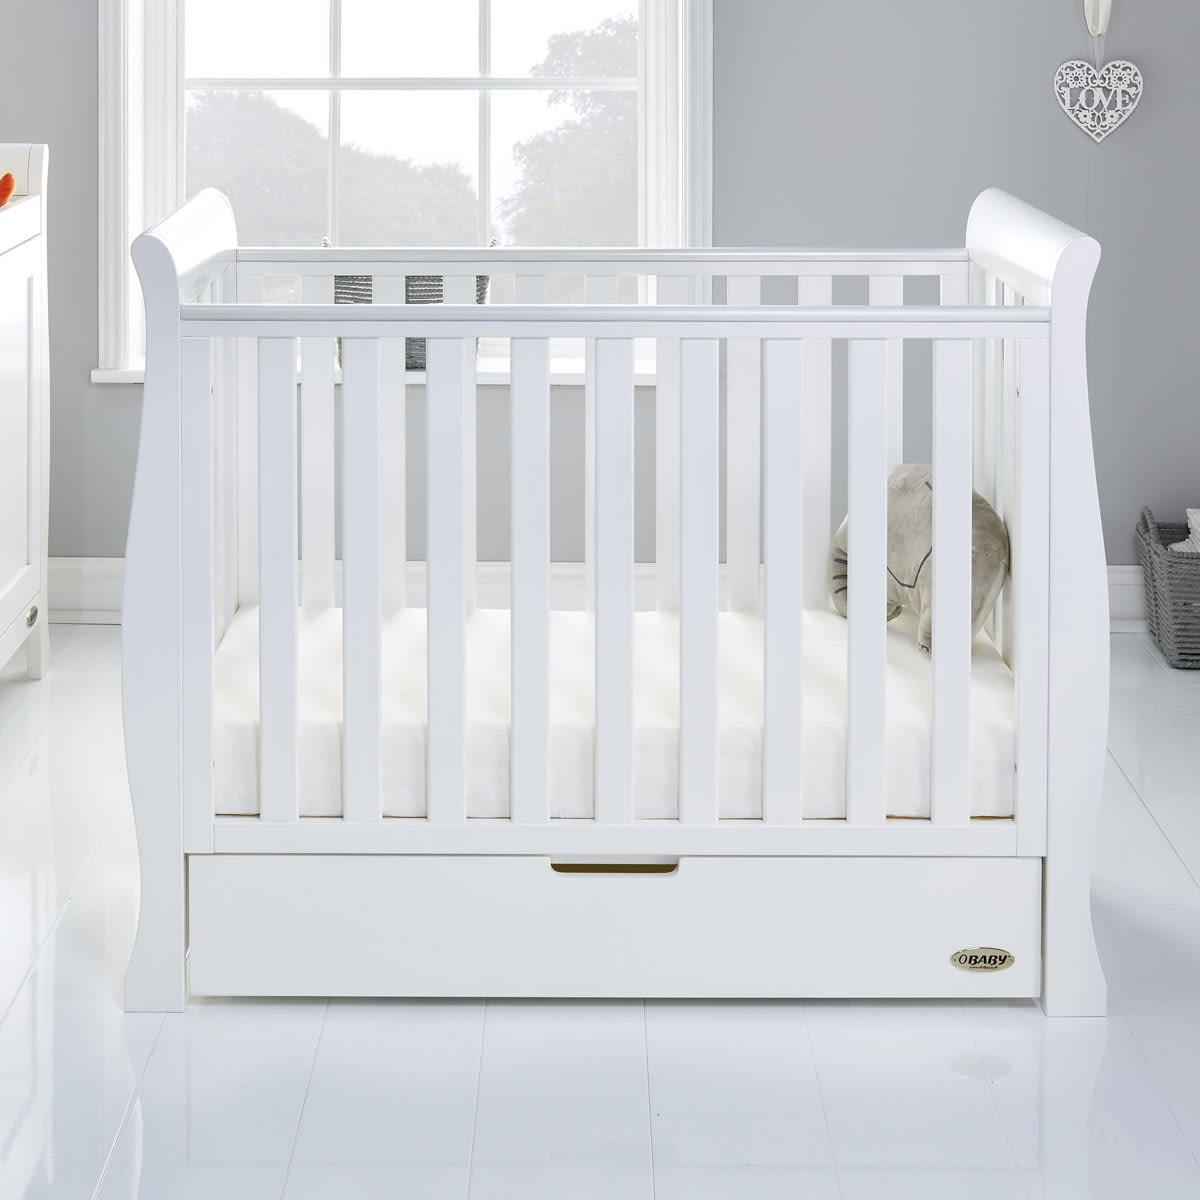 Furniture Stores Stamford Ct: Stamford Space Saver Sleigh Cot Was £259.99 Now £239.99